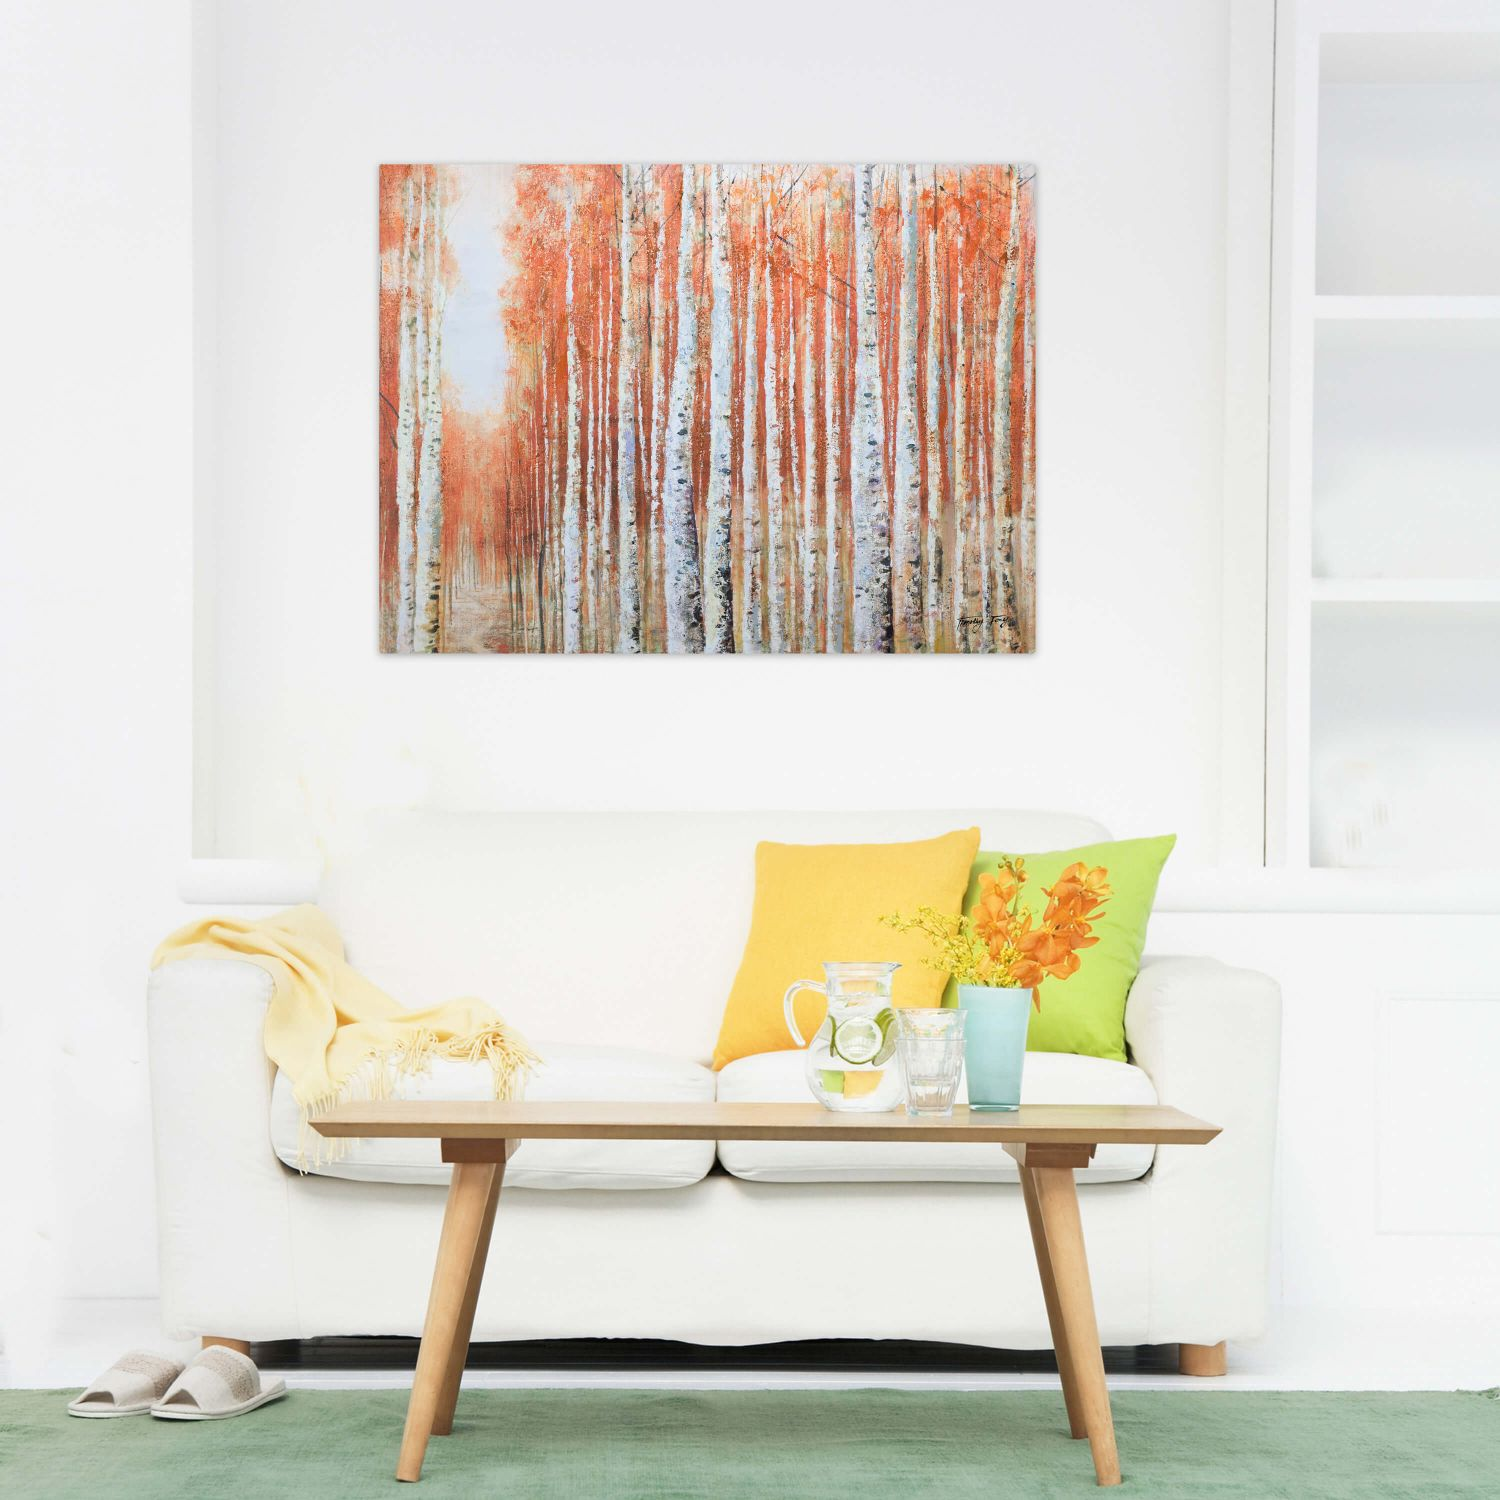 acryl gem lde 39 birkenwald deko baum 39 handgemalt leinwand bilder 100x75cm ebay. Black Bedroom Furniture Sets. Home Design Ideas